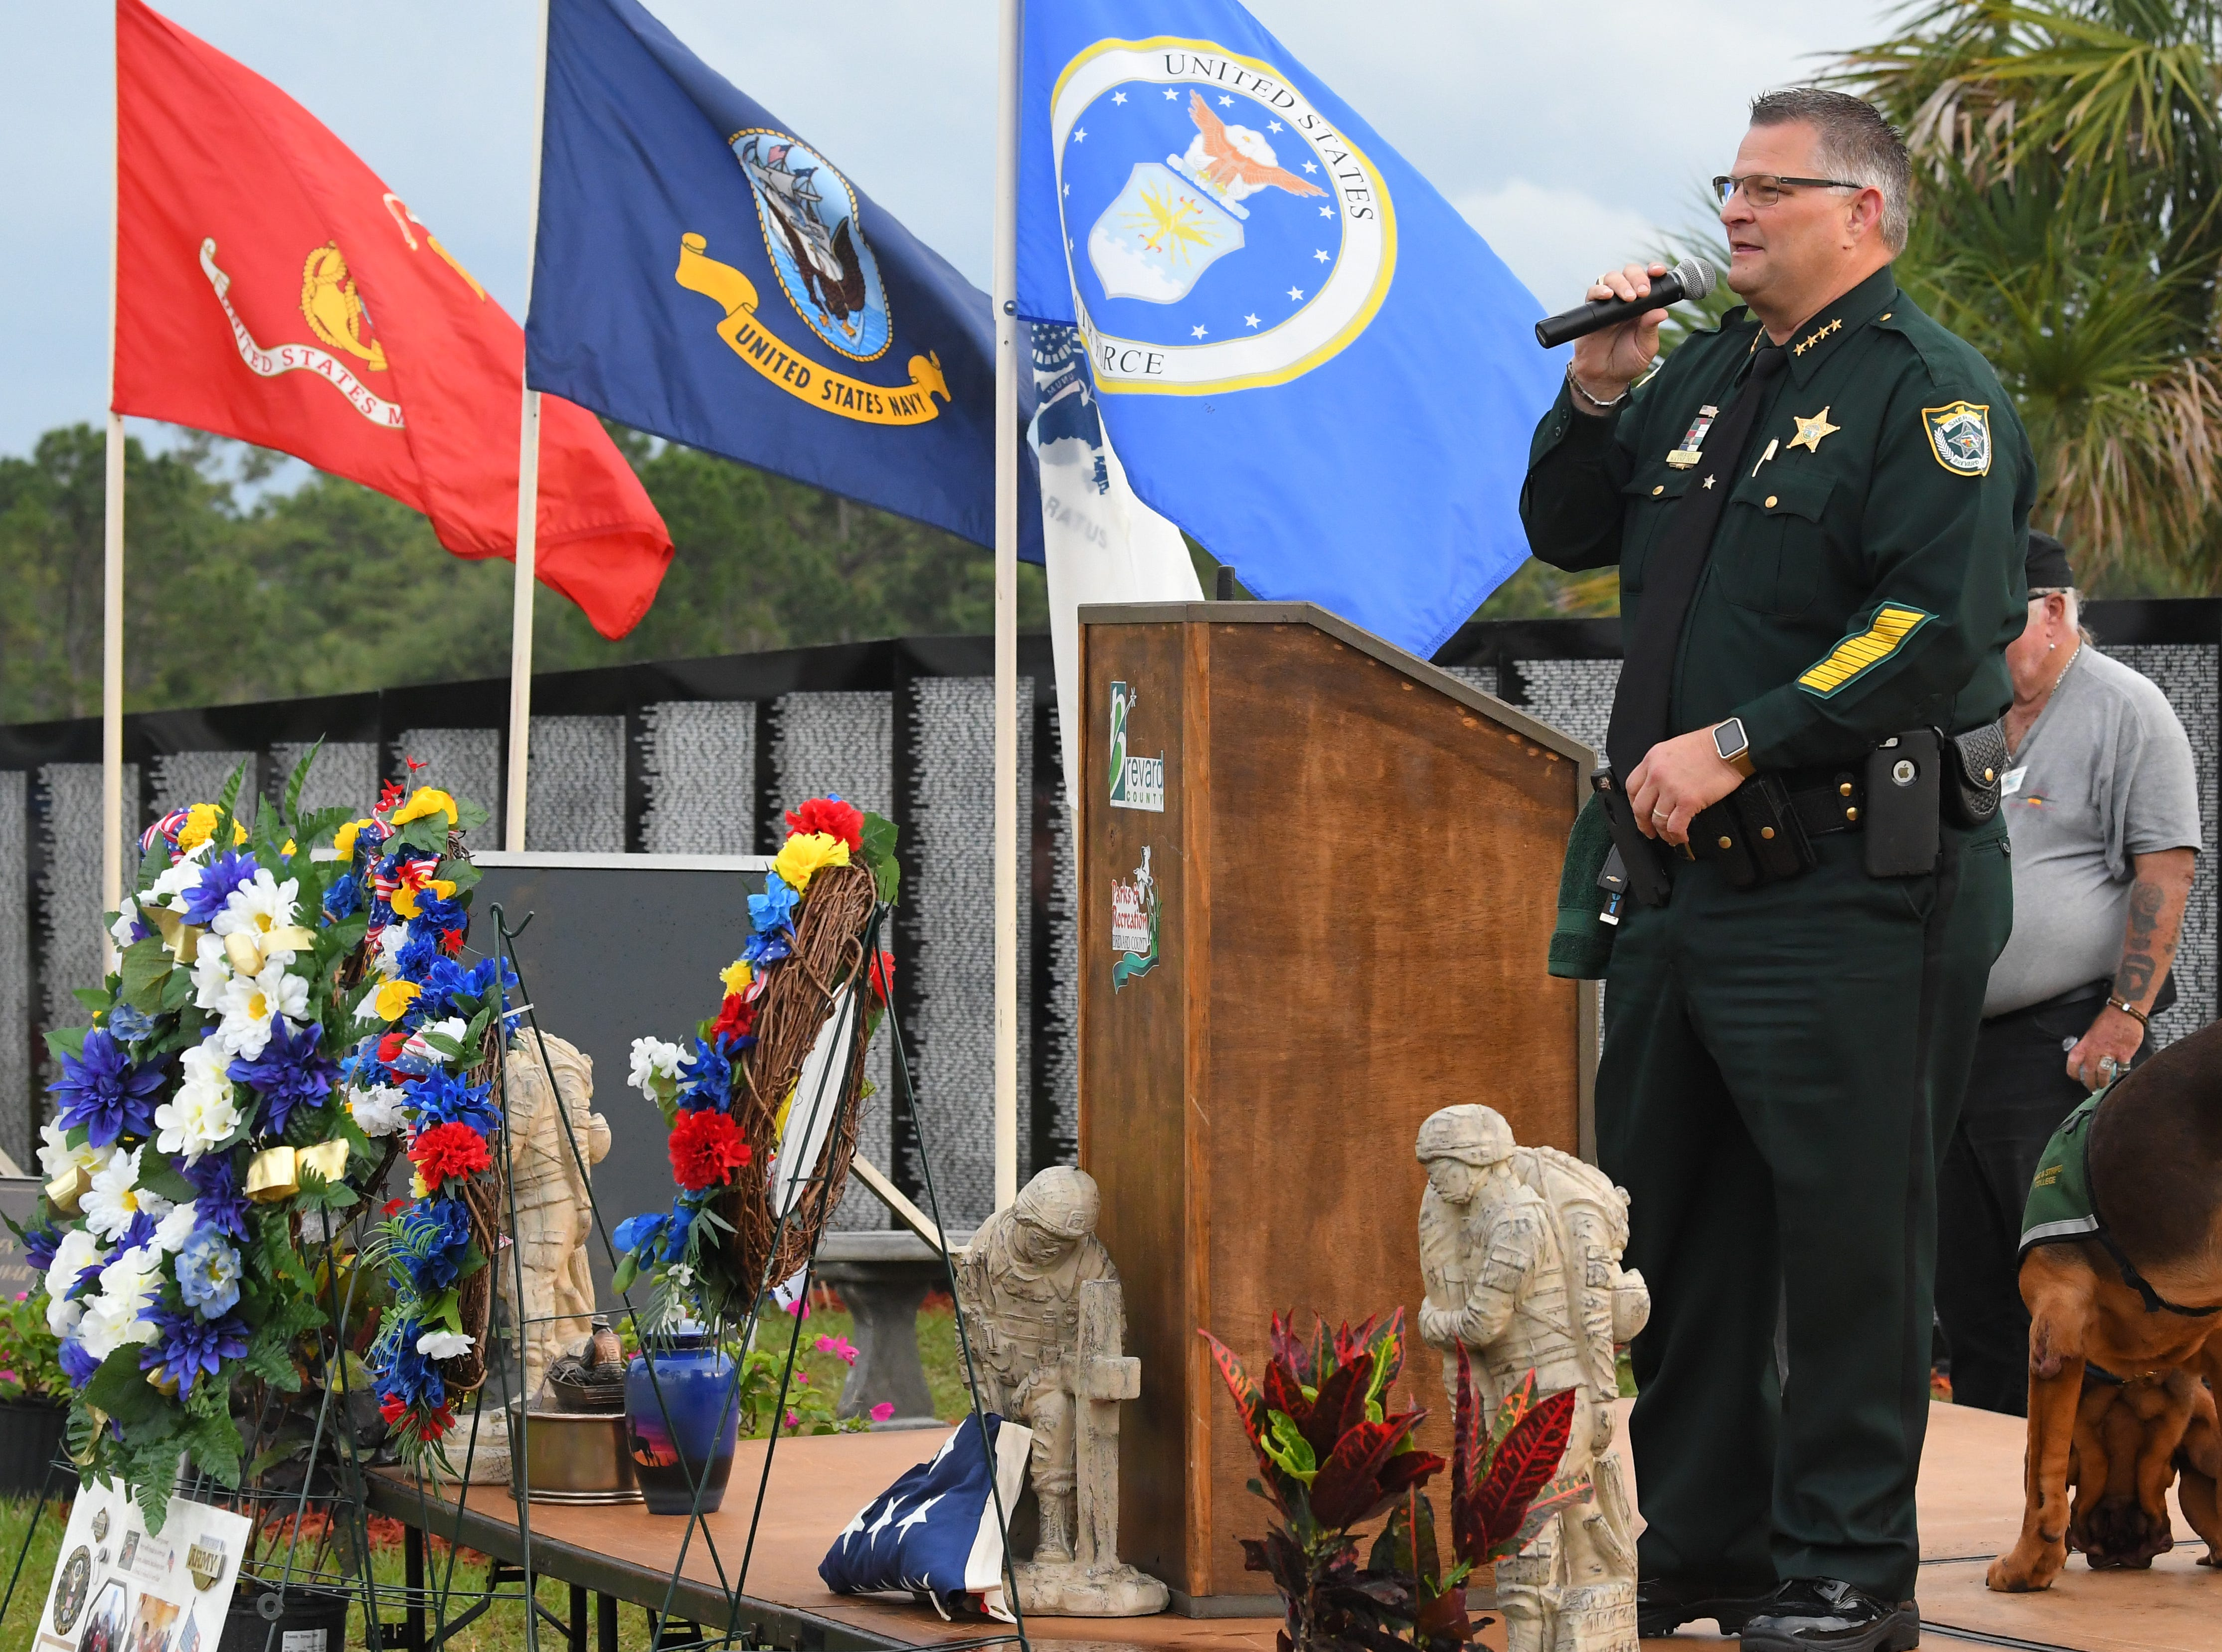 Brevard Sheriff Wayne Ivey. Monday's presentation of wreaths and opening ceremony at the Vietnam Traveling Memorial Wall, which will be set up until May 12. It is part of The 32nd Annual Vietnam and All Veterans Reunion, a free event open to the public at Wickham Park in Melbourne May 9-12.